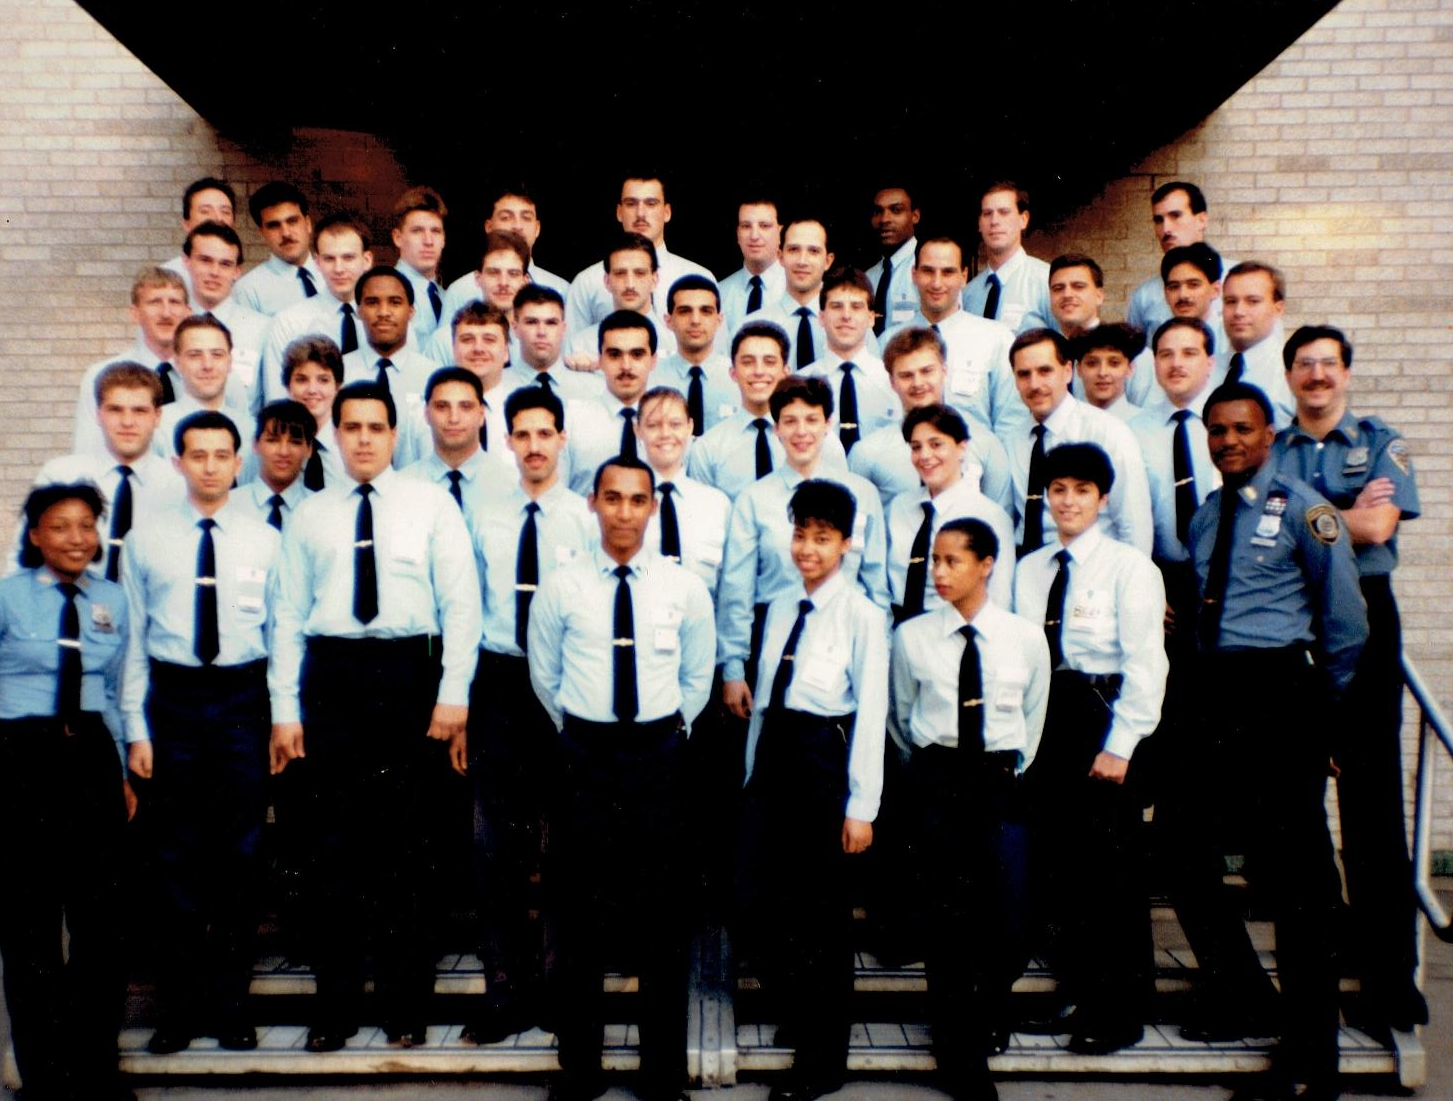 Academy Picture-page-001.jpg